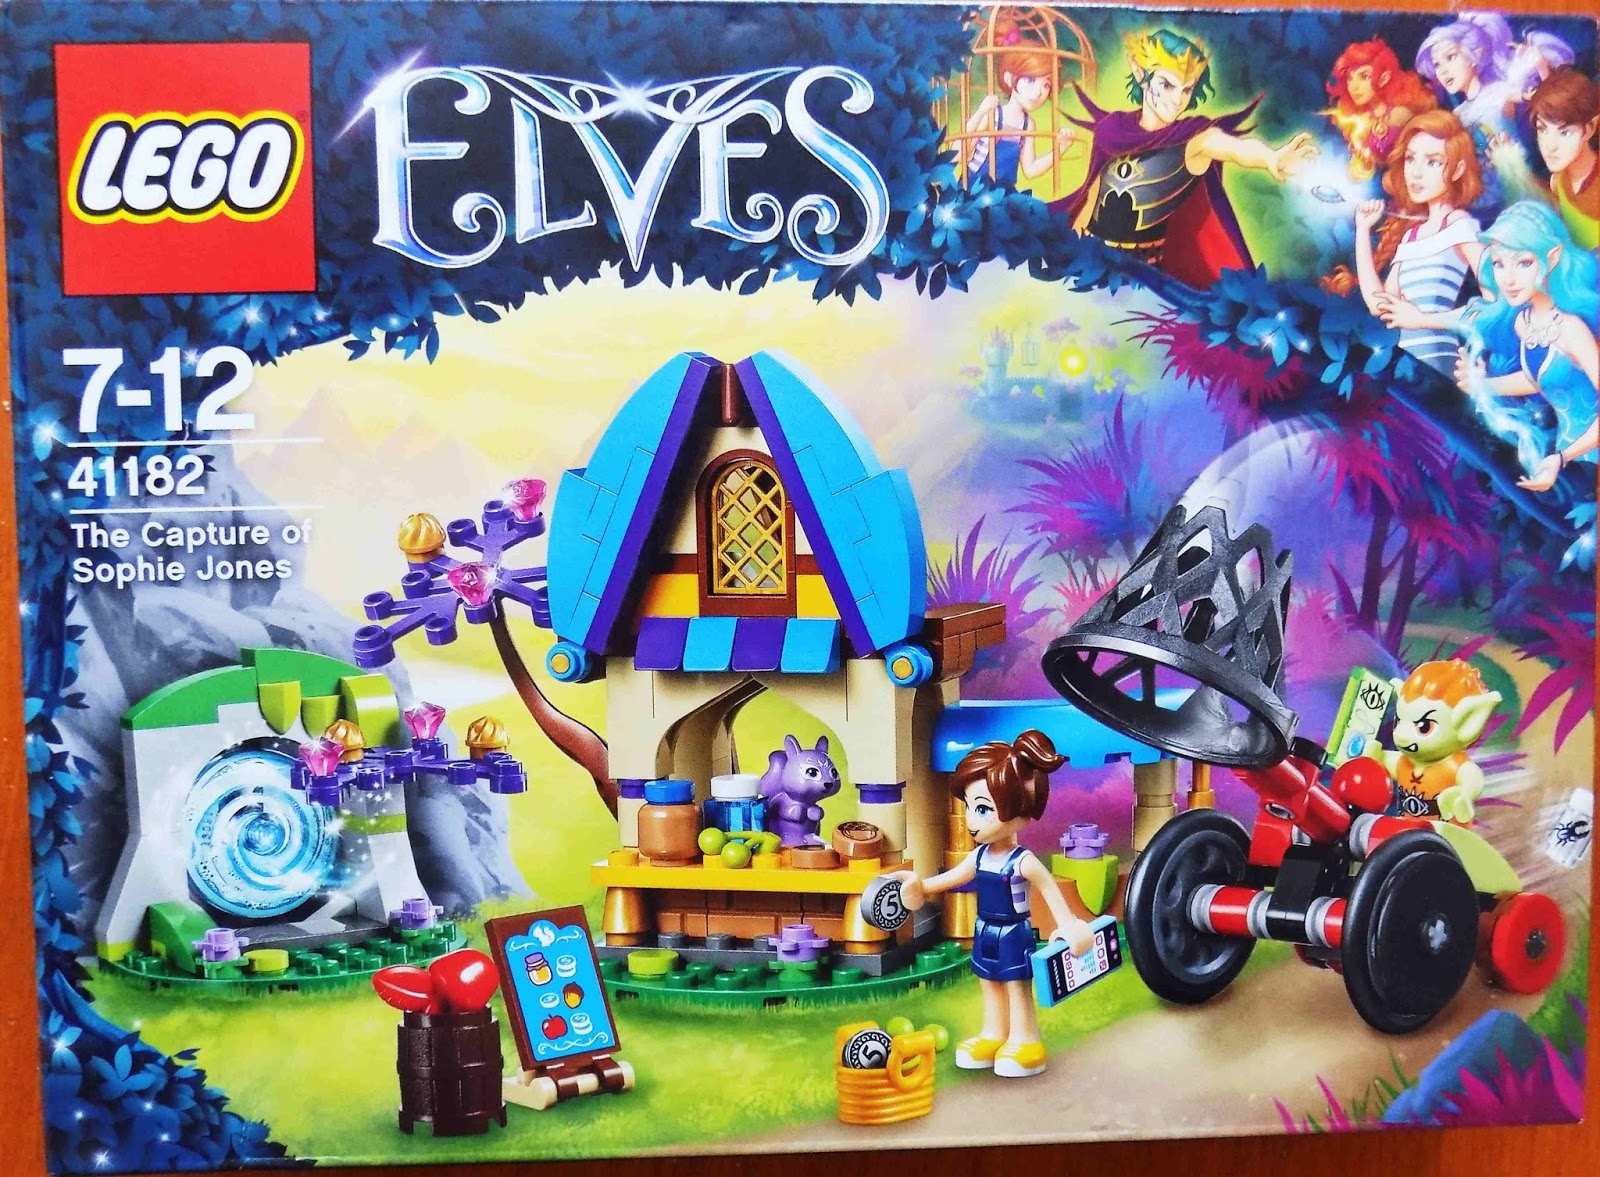 Lego Elves - The Capture of Sophie Jones (review) | Madhouse